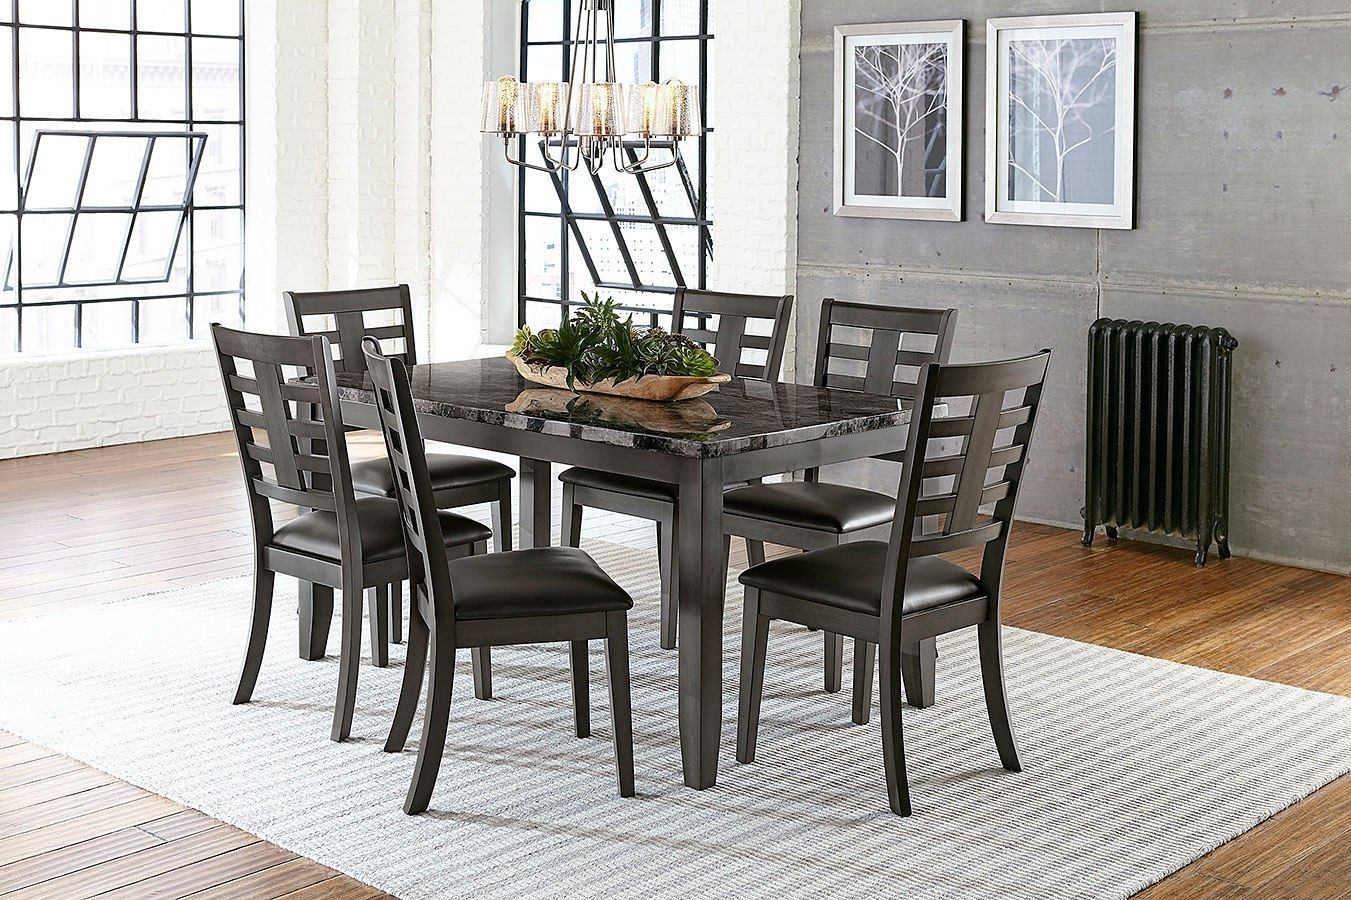 Canaan 7 piece dining room set